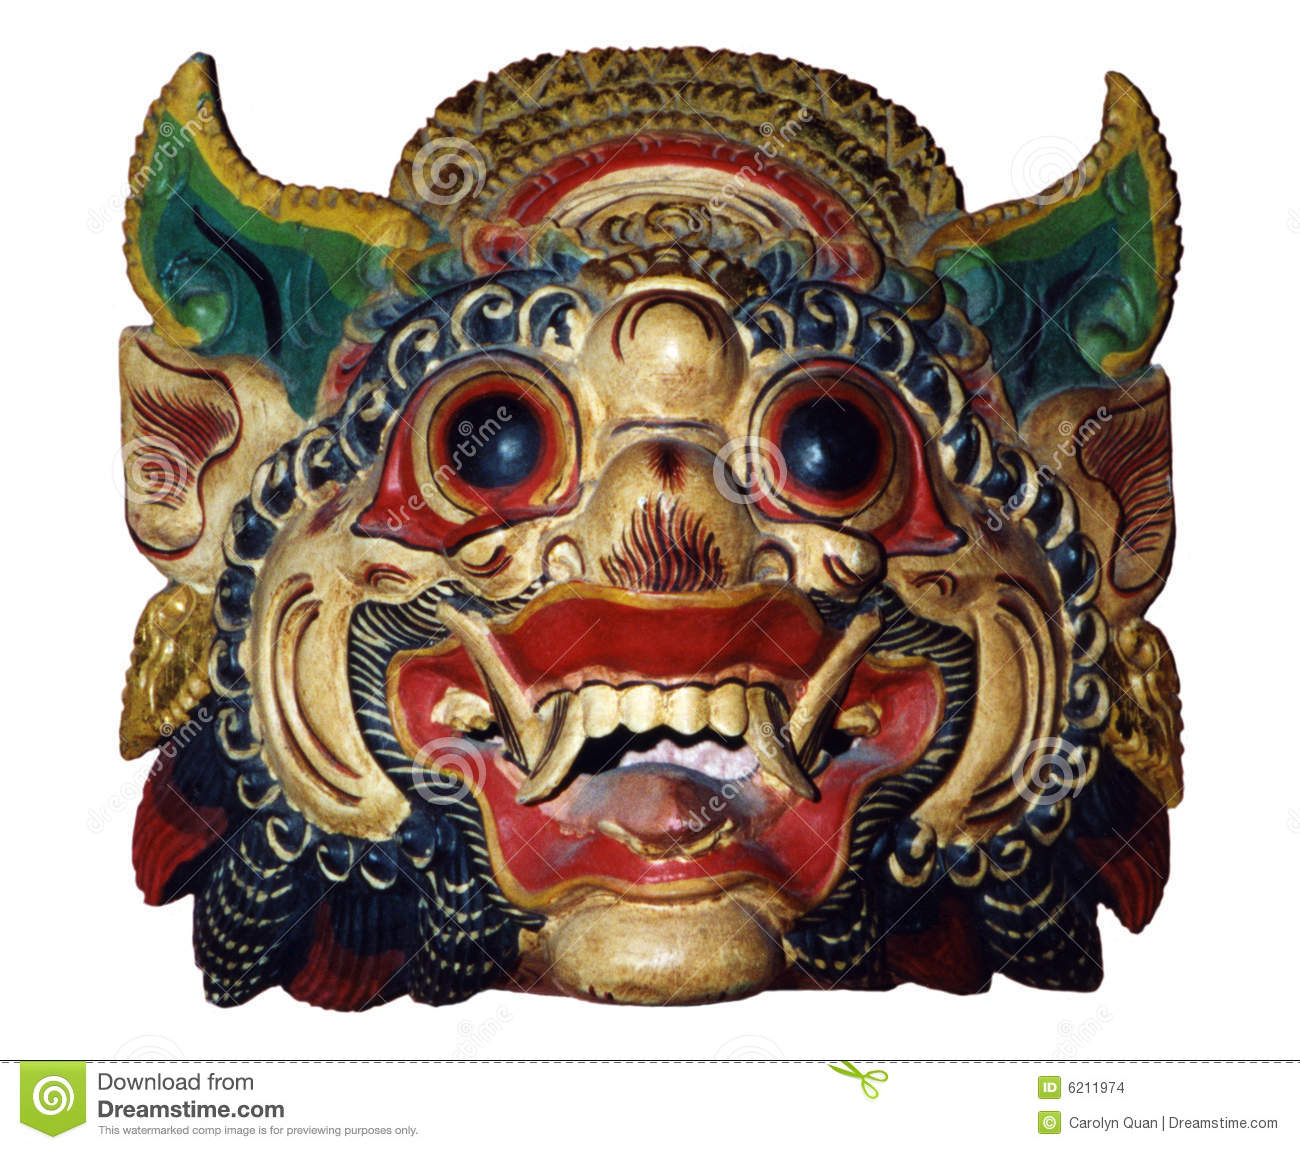 Indonesian mask stock images image 6211974 for The mask photos gallery